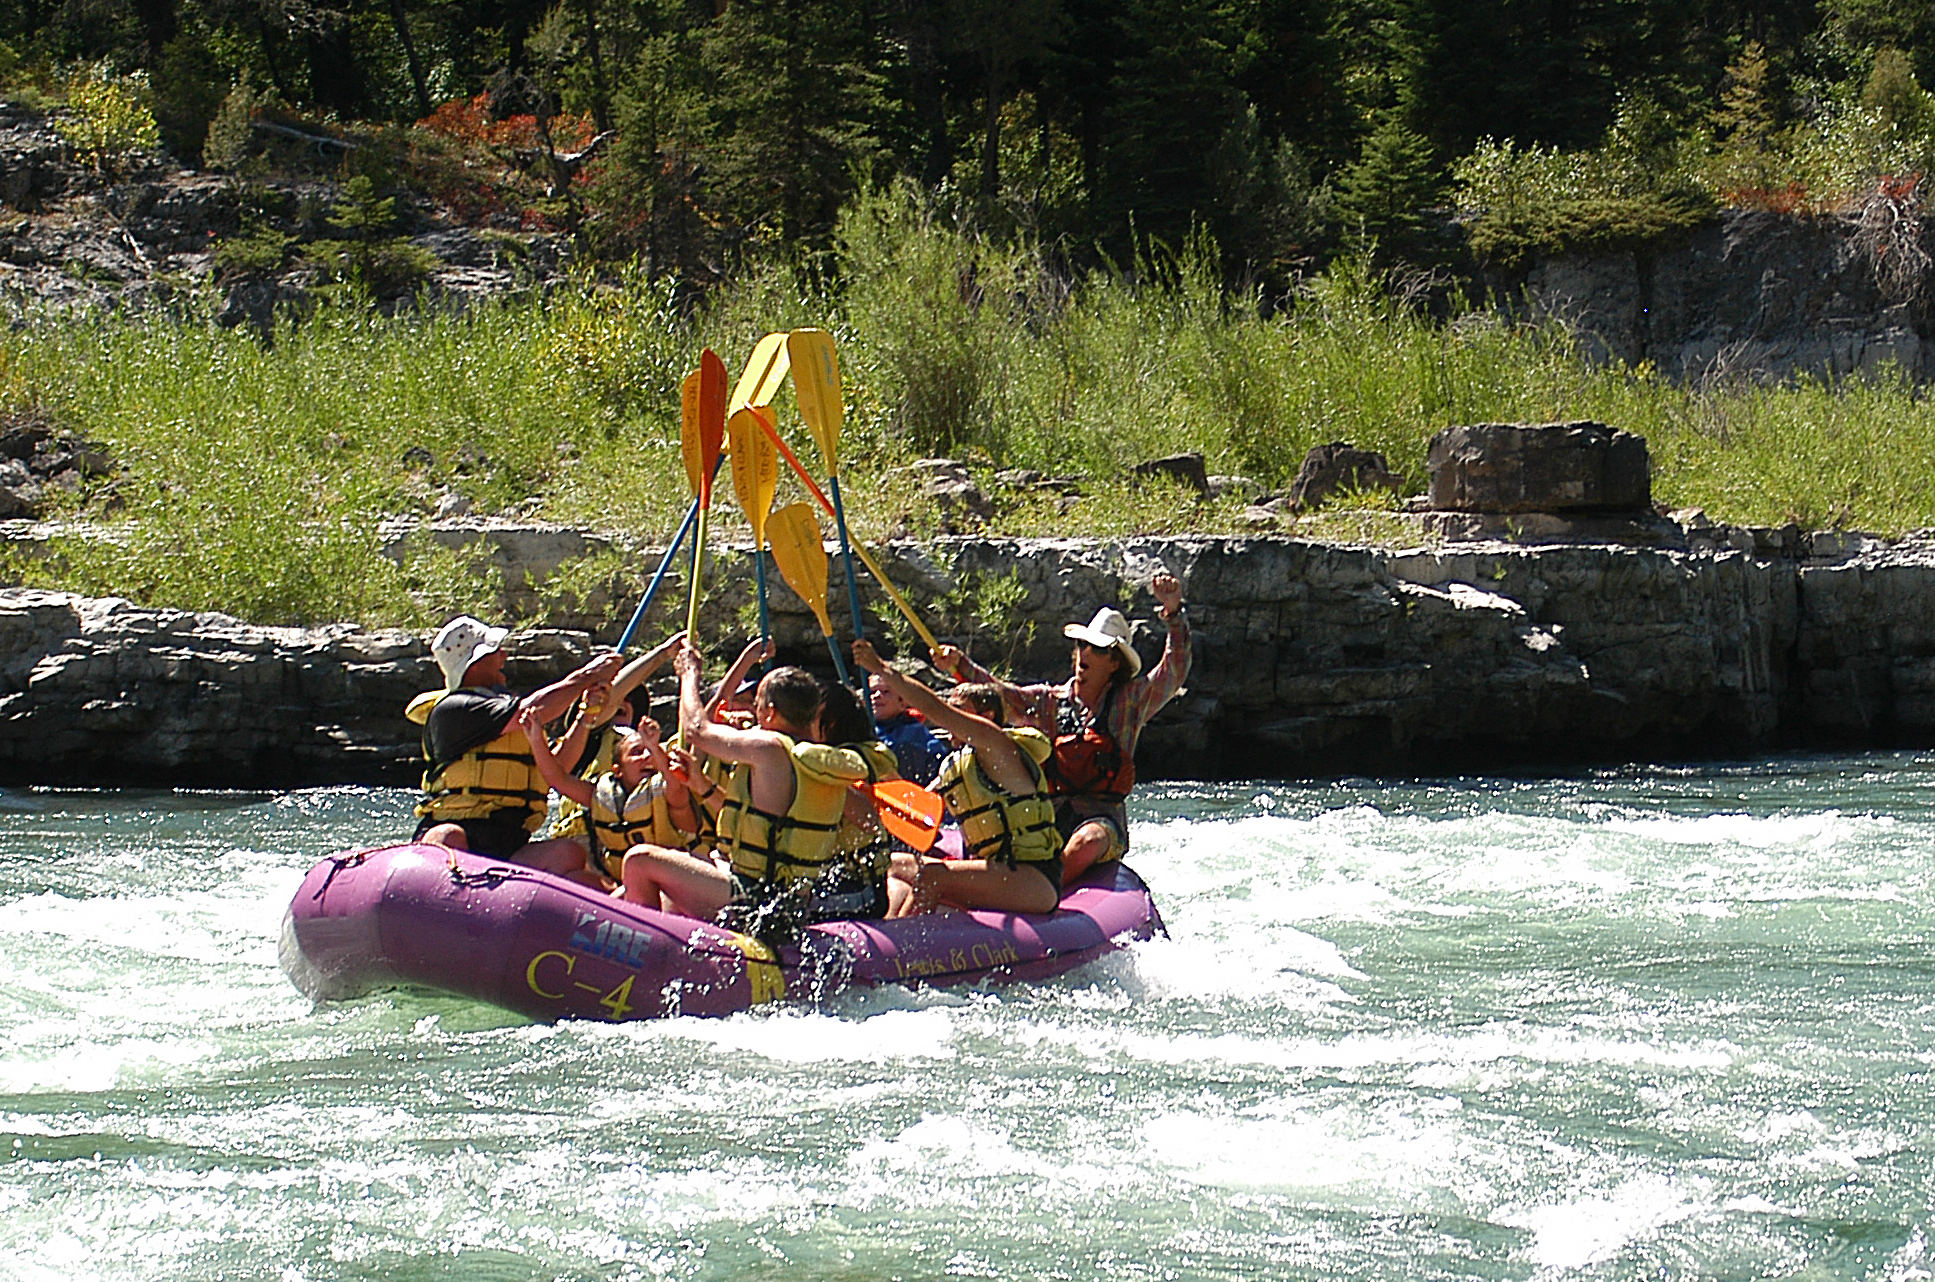 A whitewater high-five!